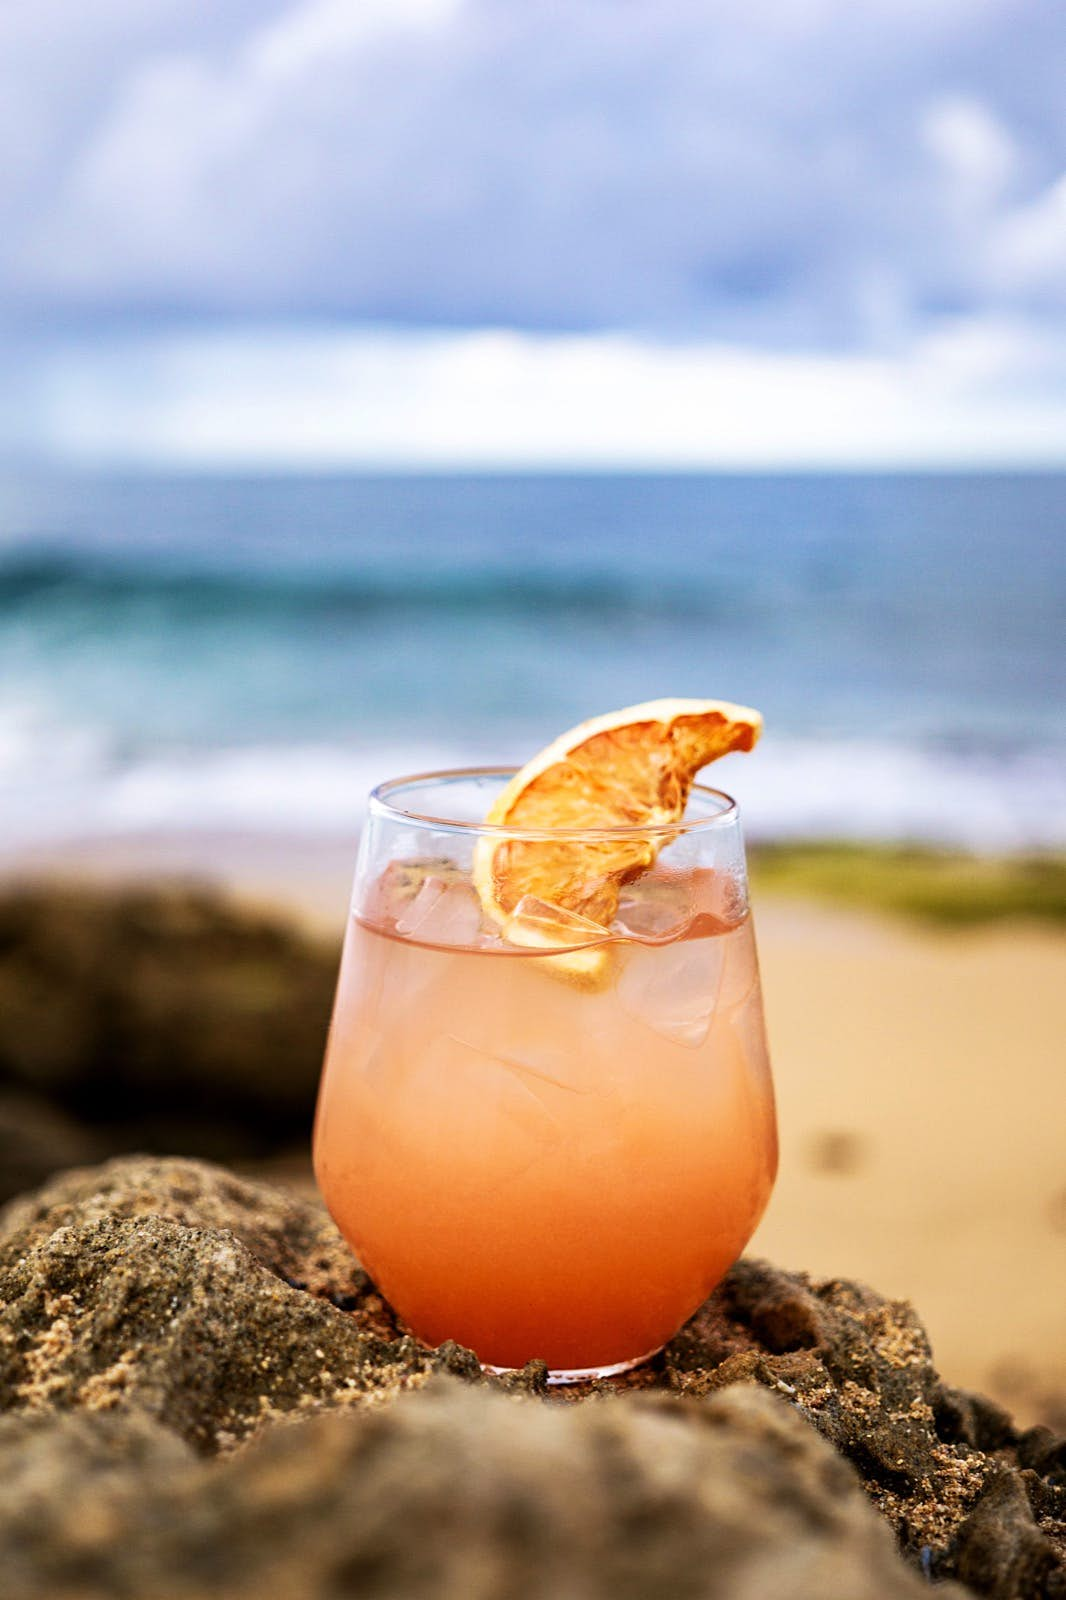 A peach-colored cocktail with an orange slice resting on the rim sits on a rock on the beach. In the background, waves crash onto the shore on a cloudy day. More and more San Juan restaurants are making creative cocktails a priority.